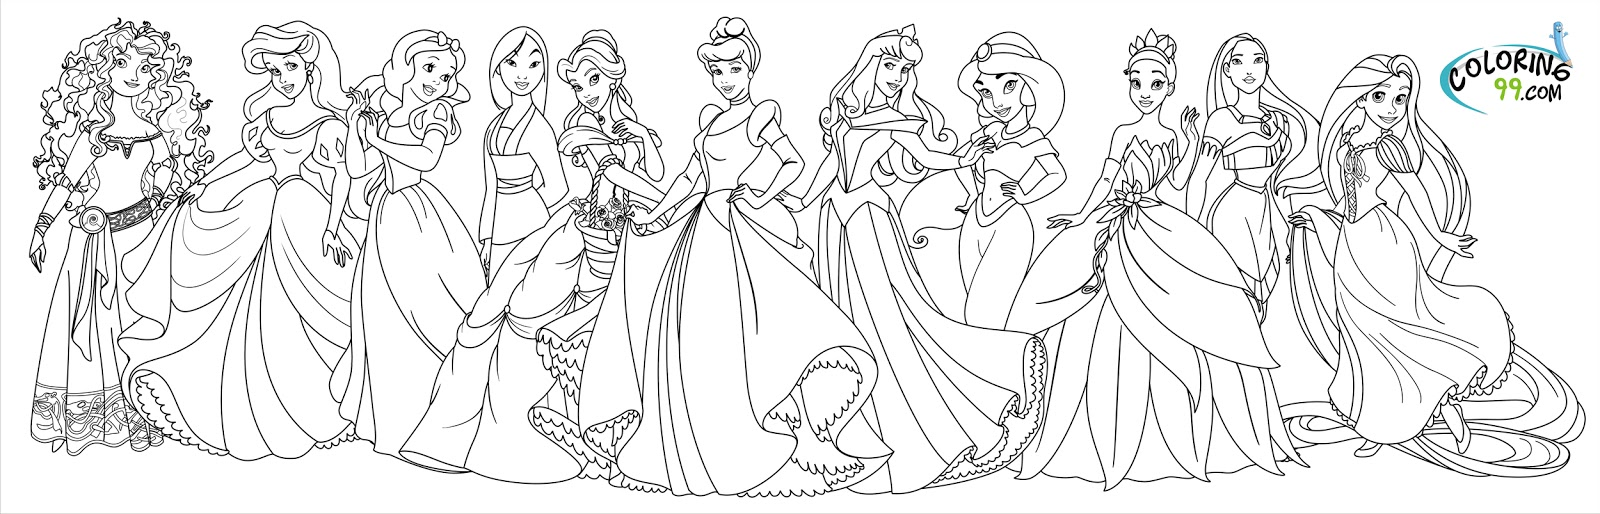 July 2013 Team Colors Disney All Princess Coloring Pages